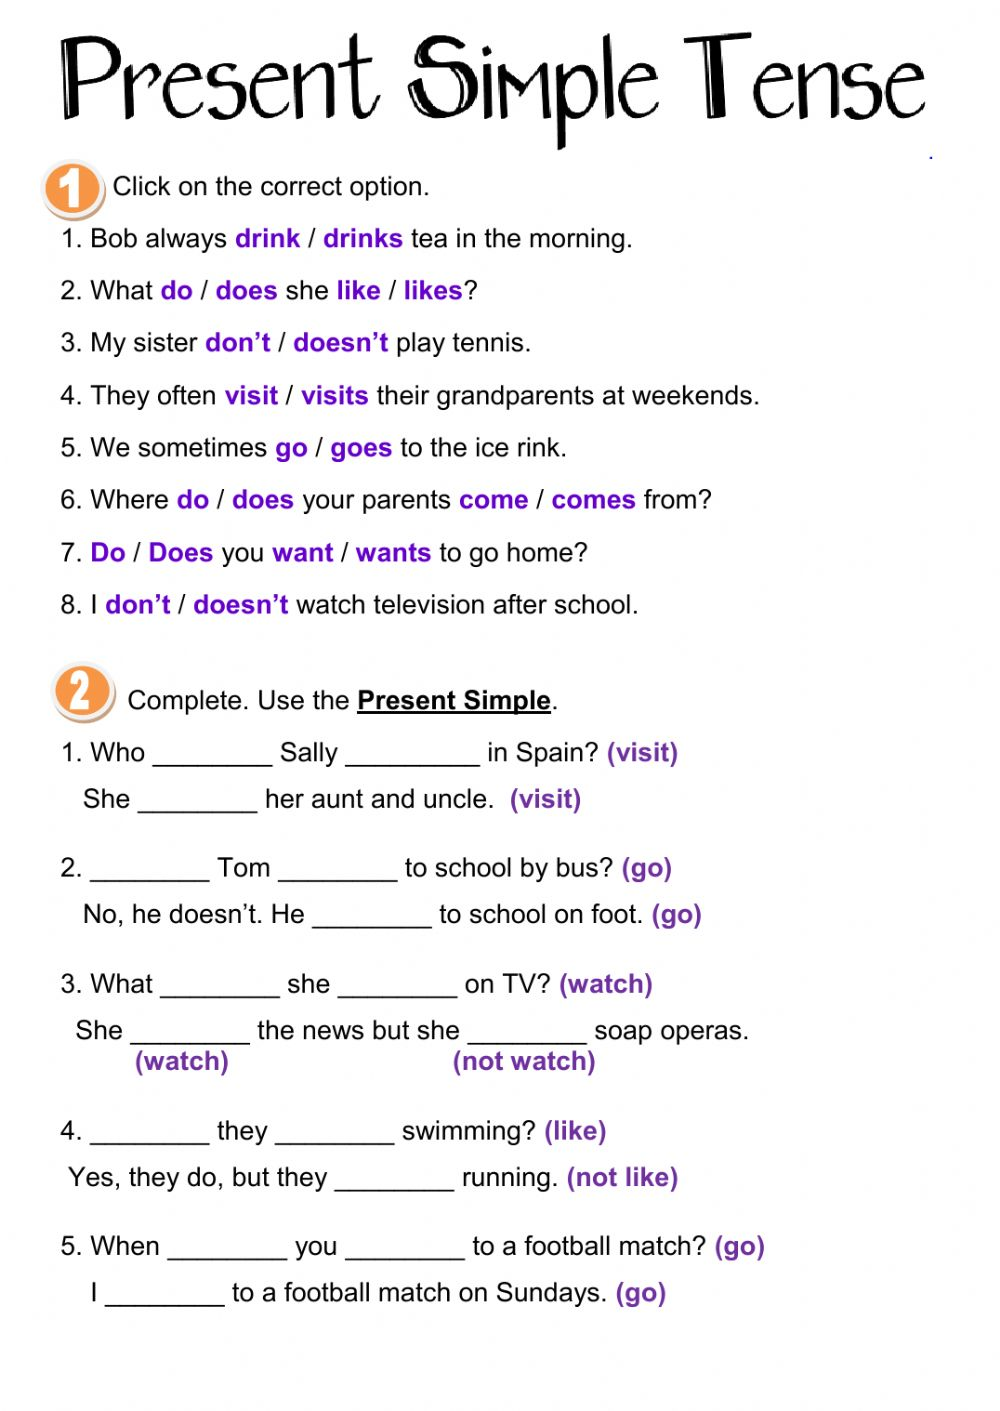 worksheet Past Tense Questions Worksheet present simple interactive worksheets worksheet tense